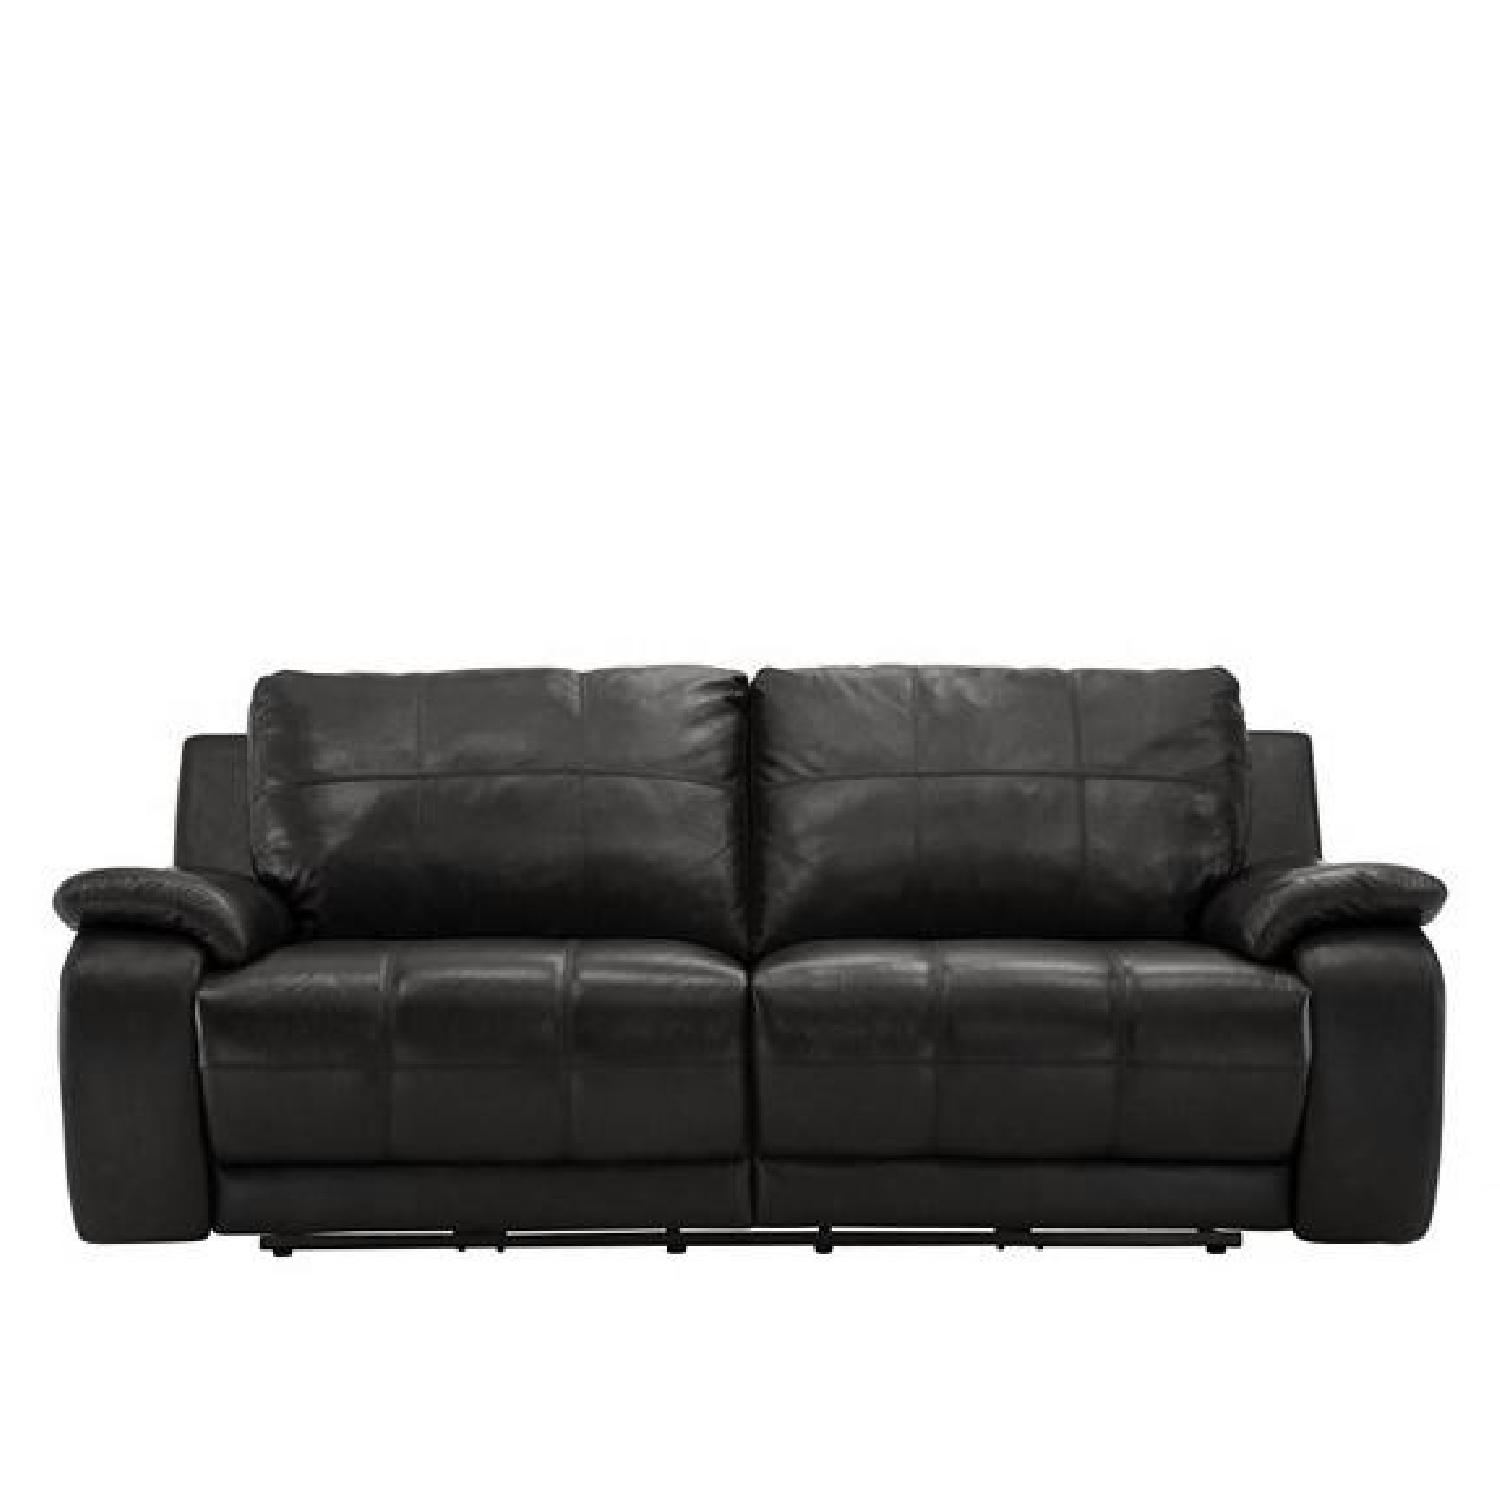 Raymour & Flanigan Power Leather Reclining Sofa - image-0